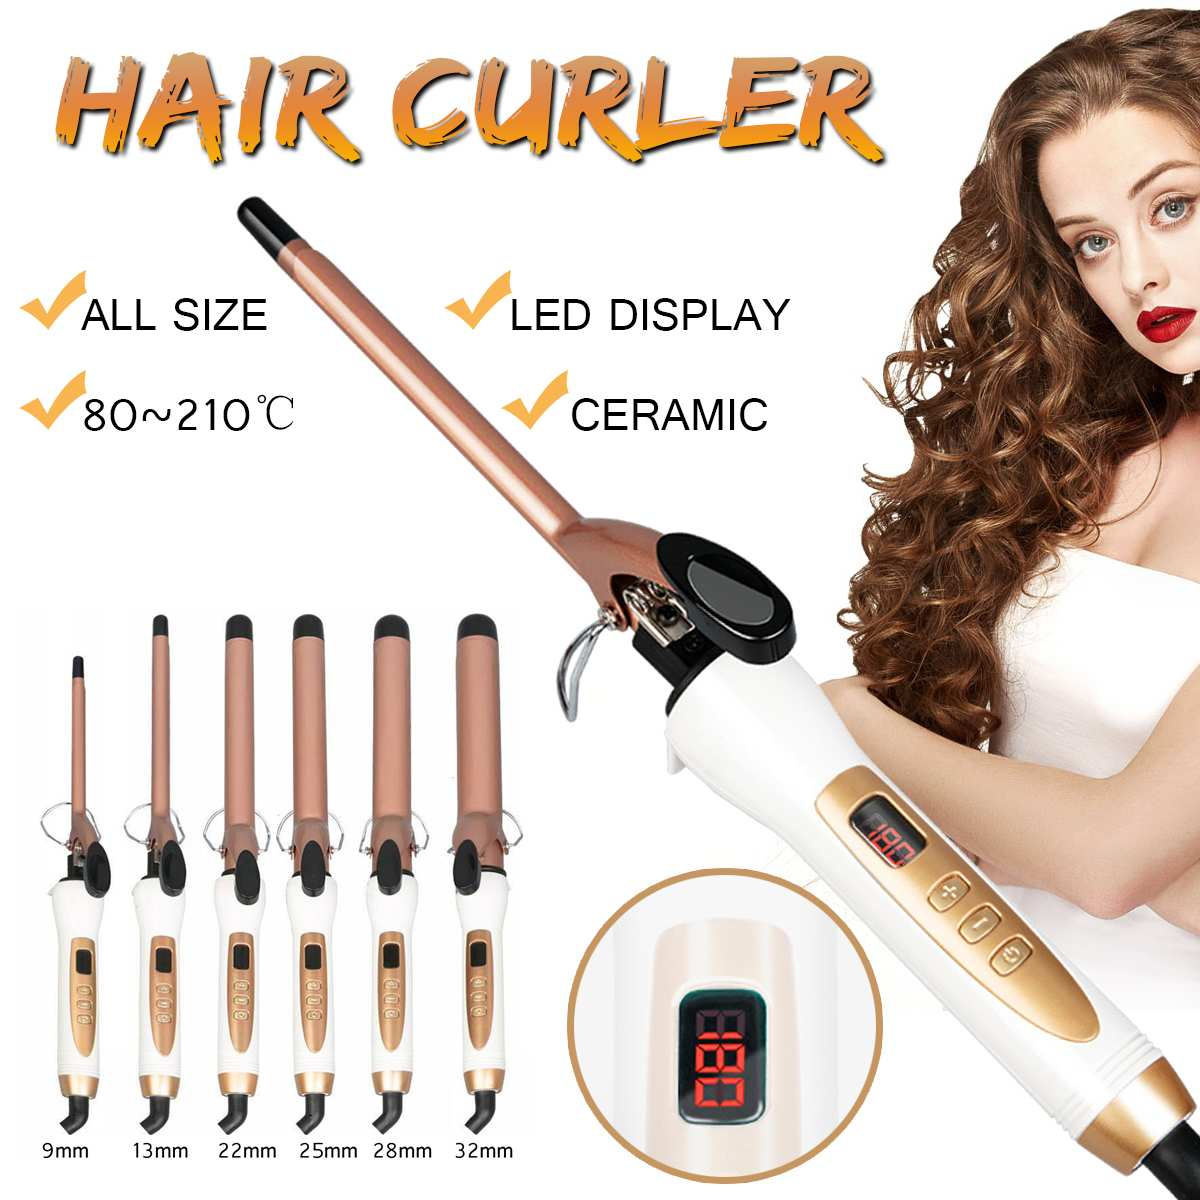 Ceramic Hair Curler Quick Heat Curling Tongs LED Dry and Wet Curling Hair Waver Styling Tool Multi size 9/13/22/25/28/32mm